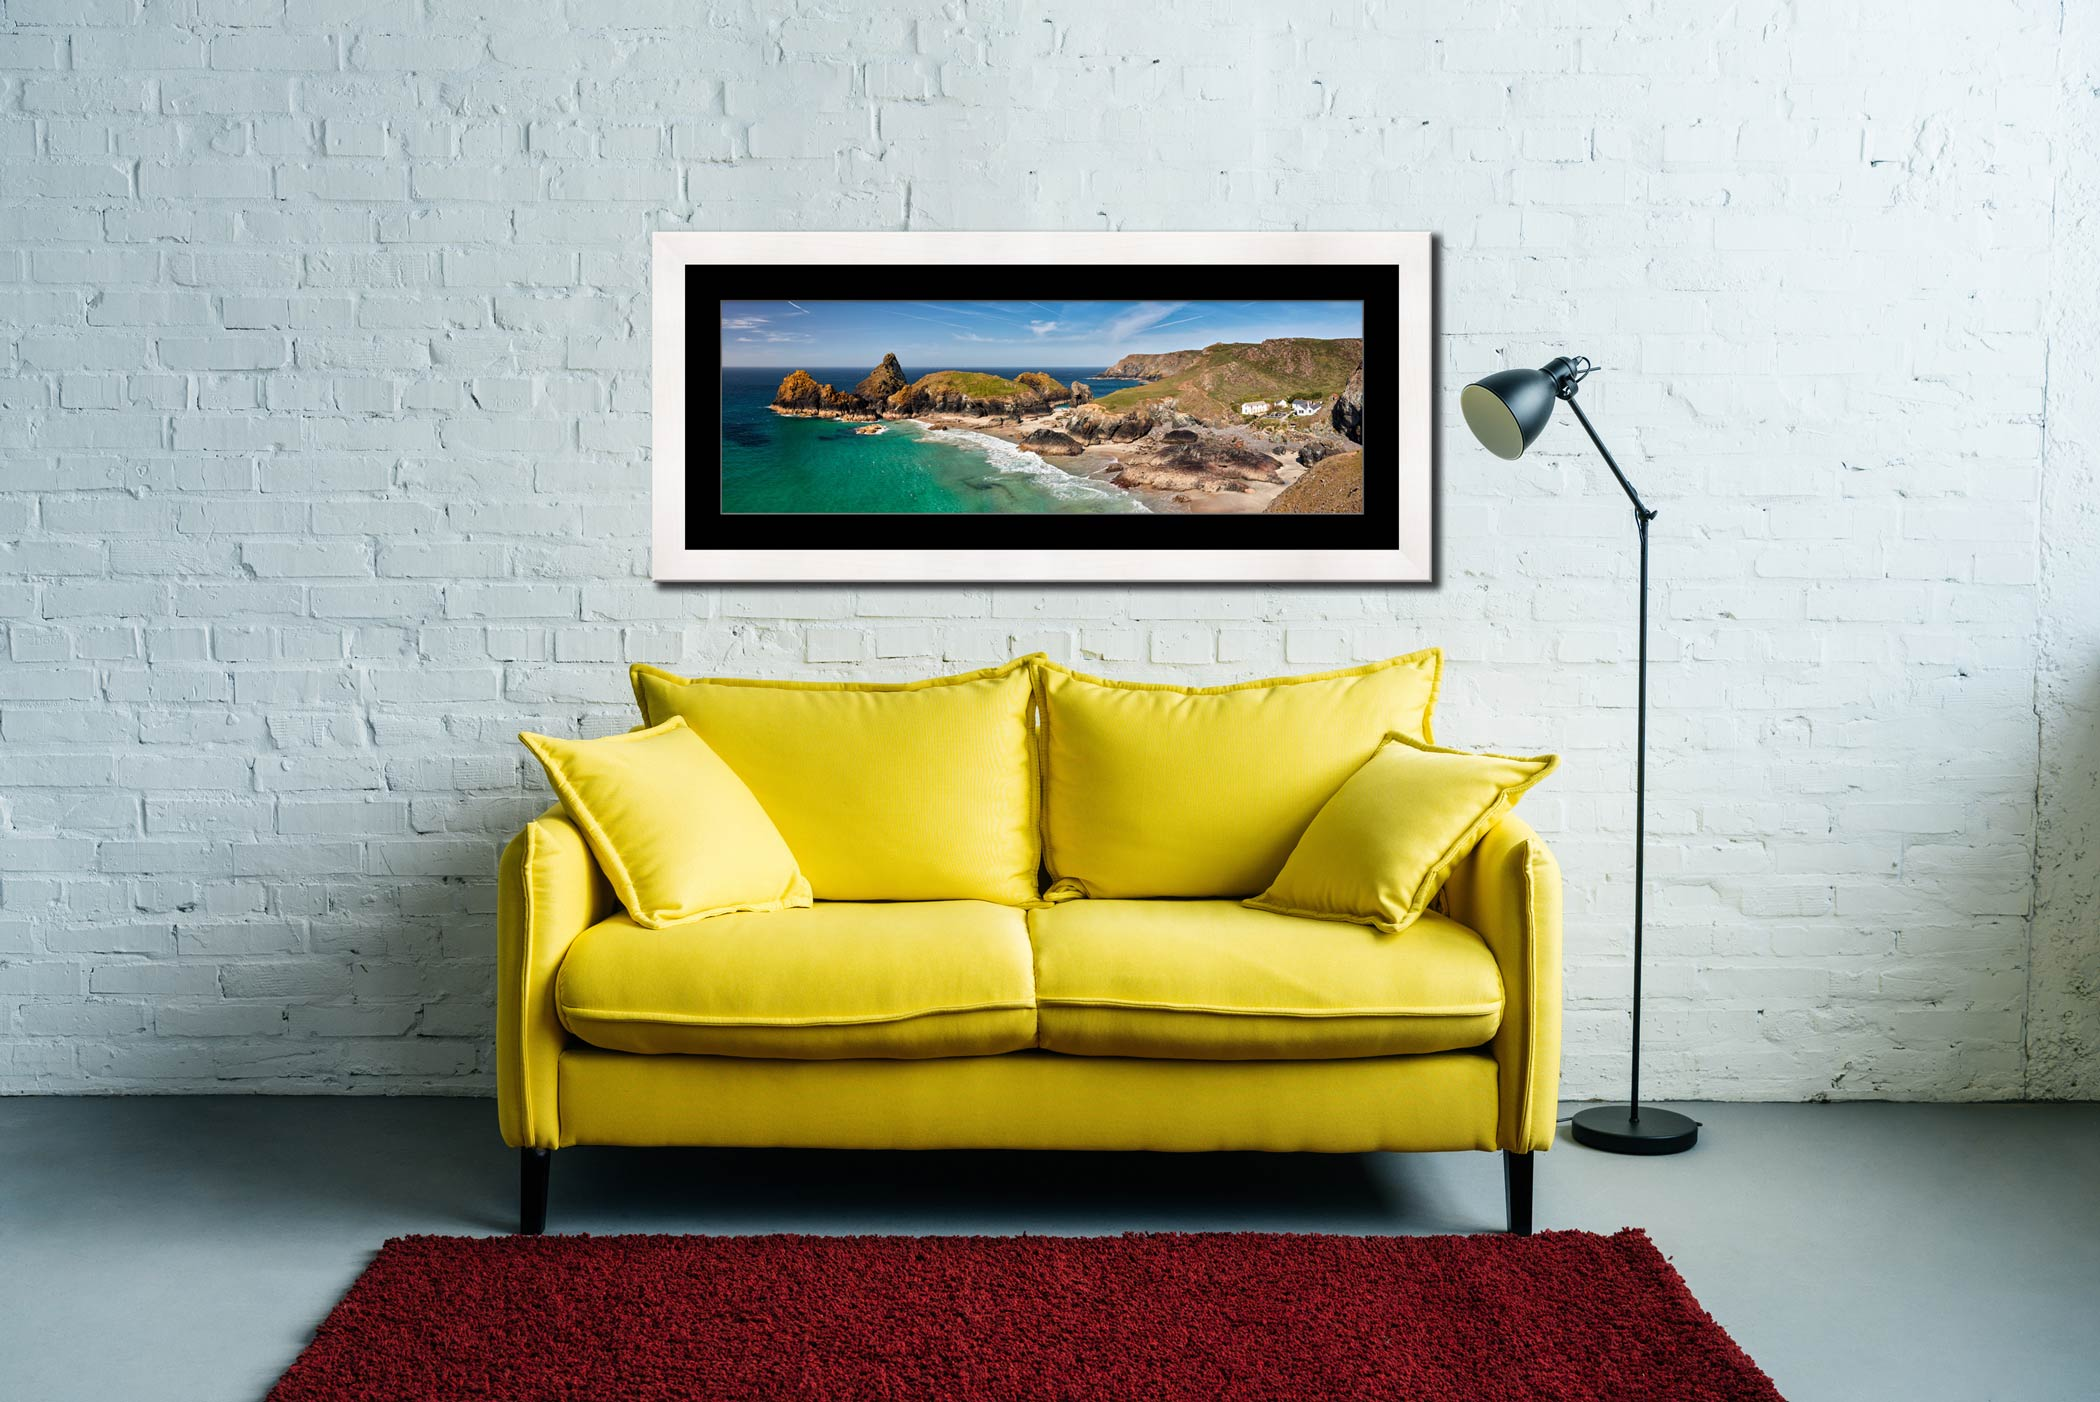 Kynance Cove and Cafe - Framed Print with Mount on Wall